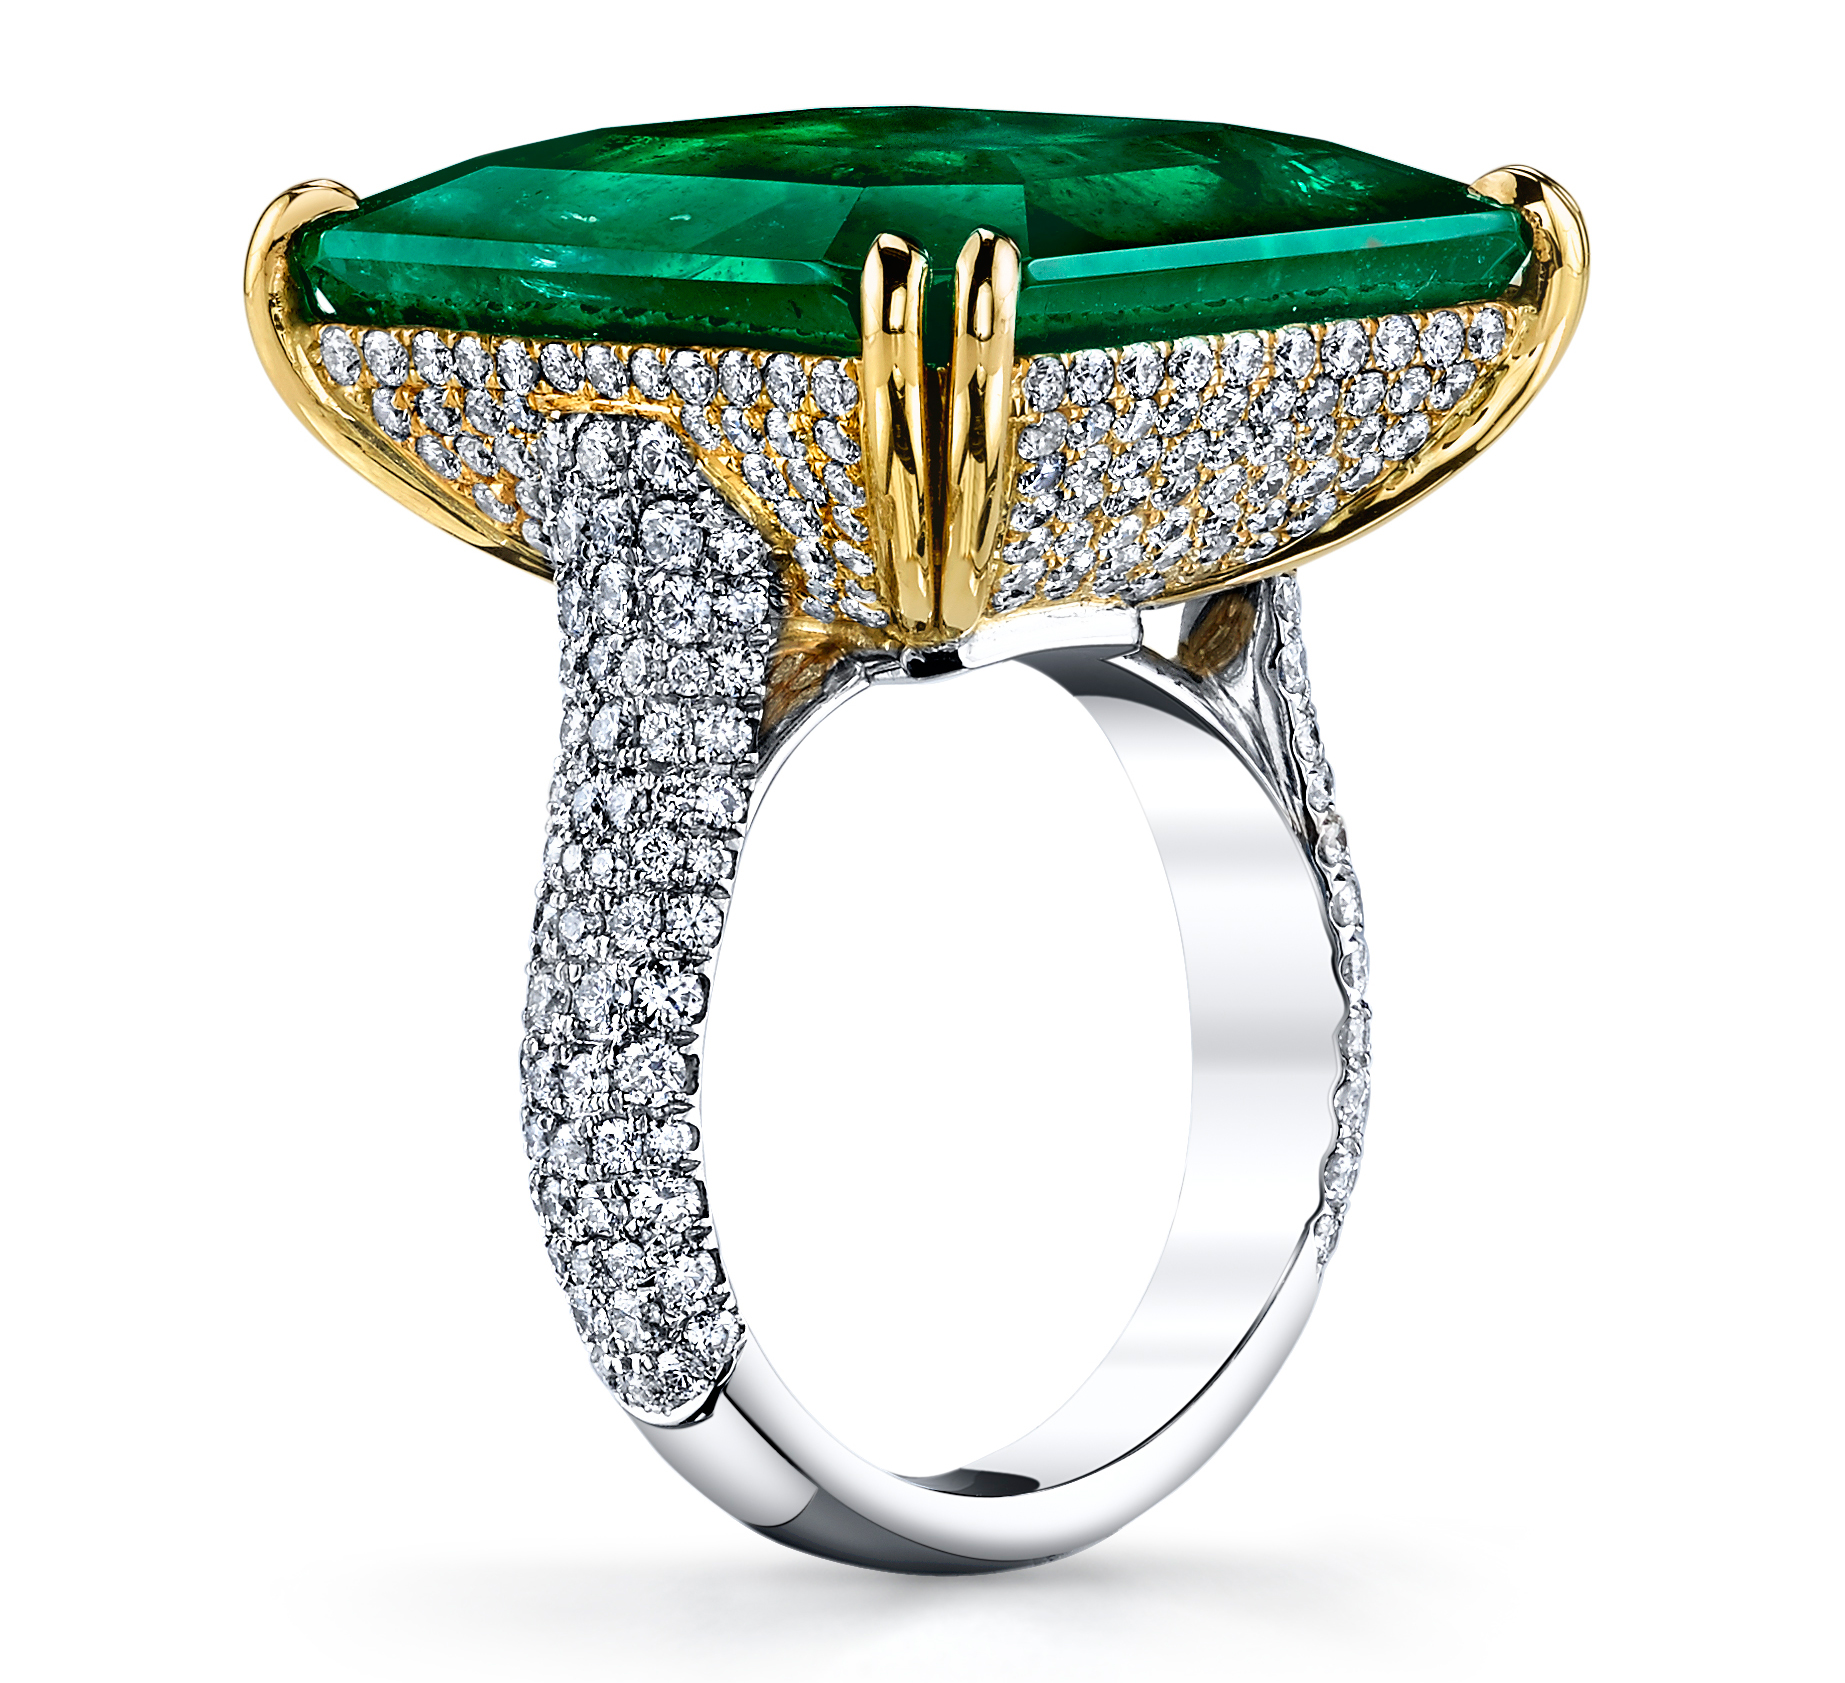 Joshua J emerald and diamond ring | JCK On Your Market